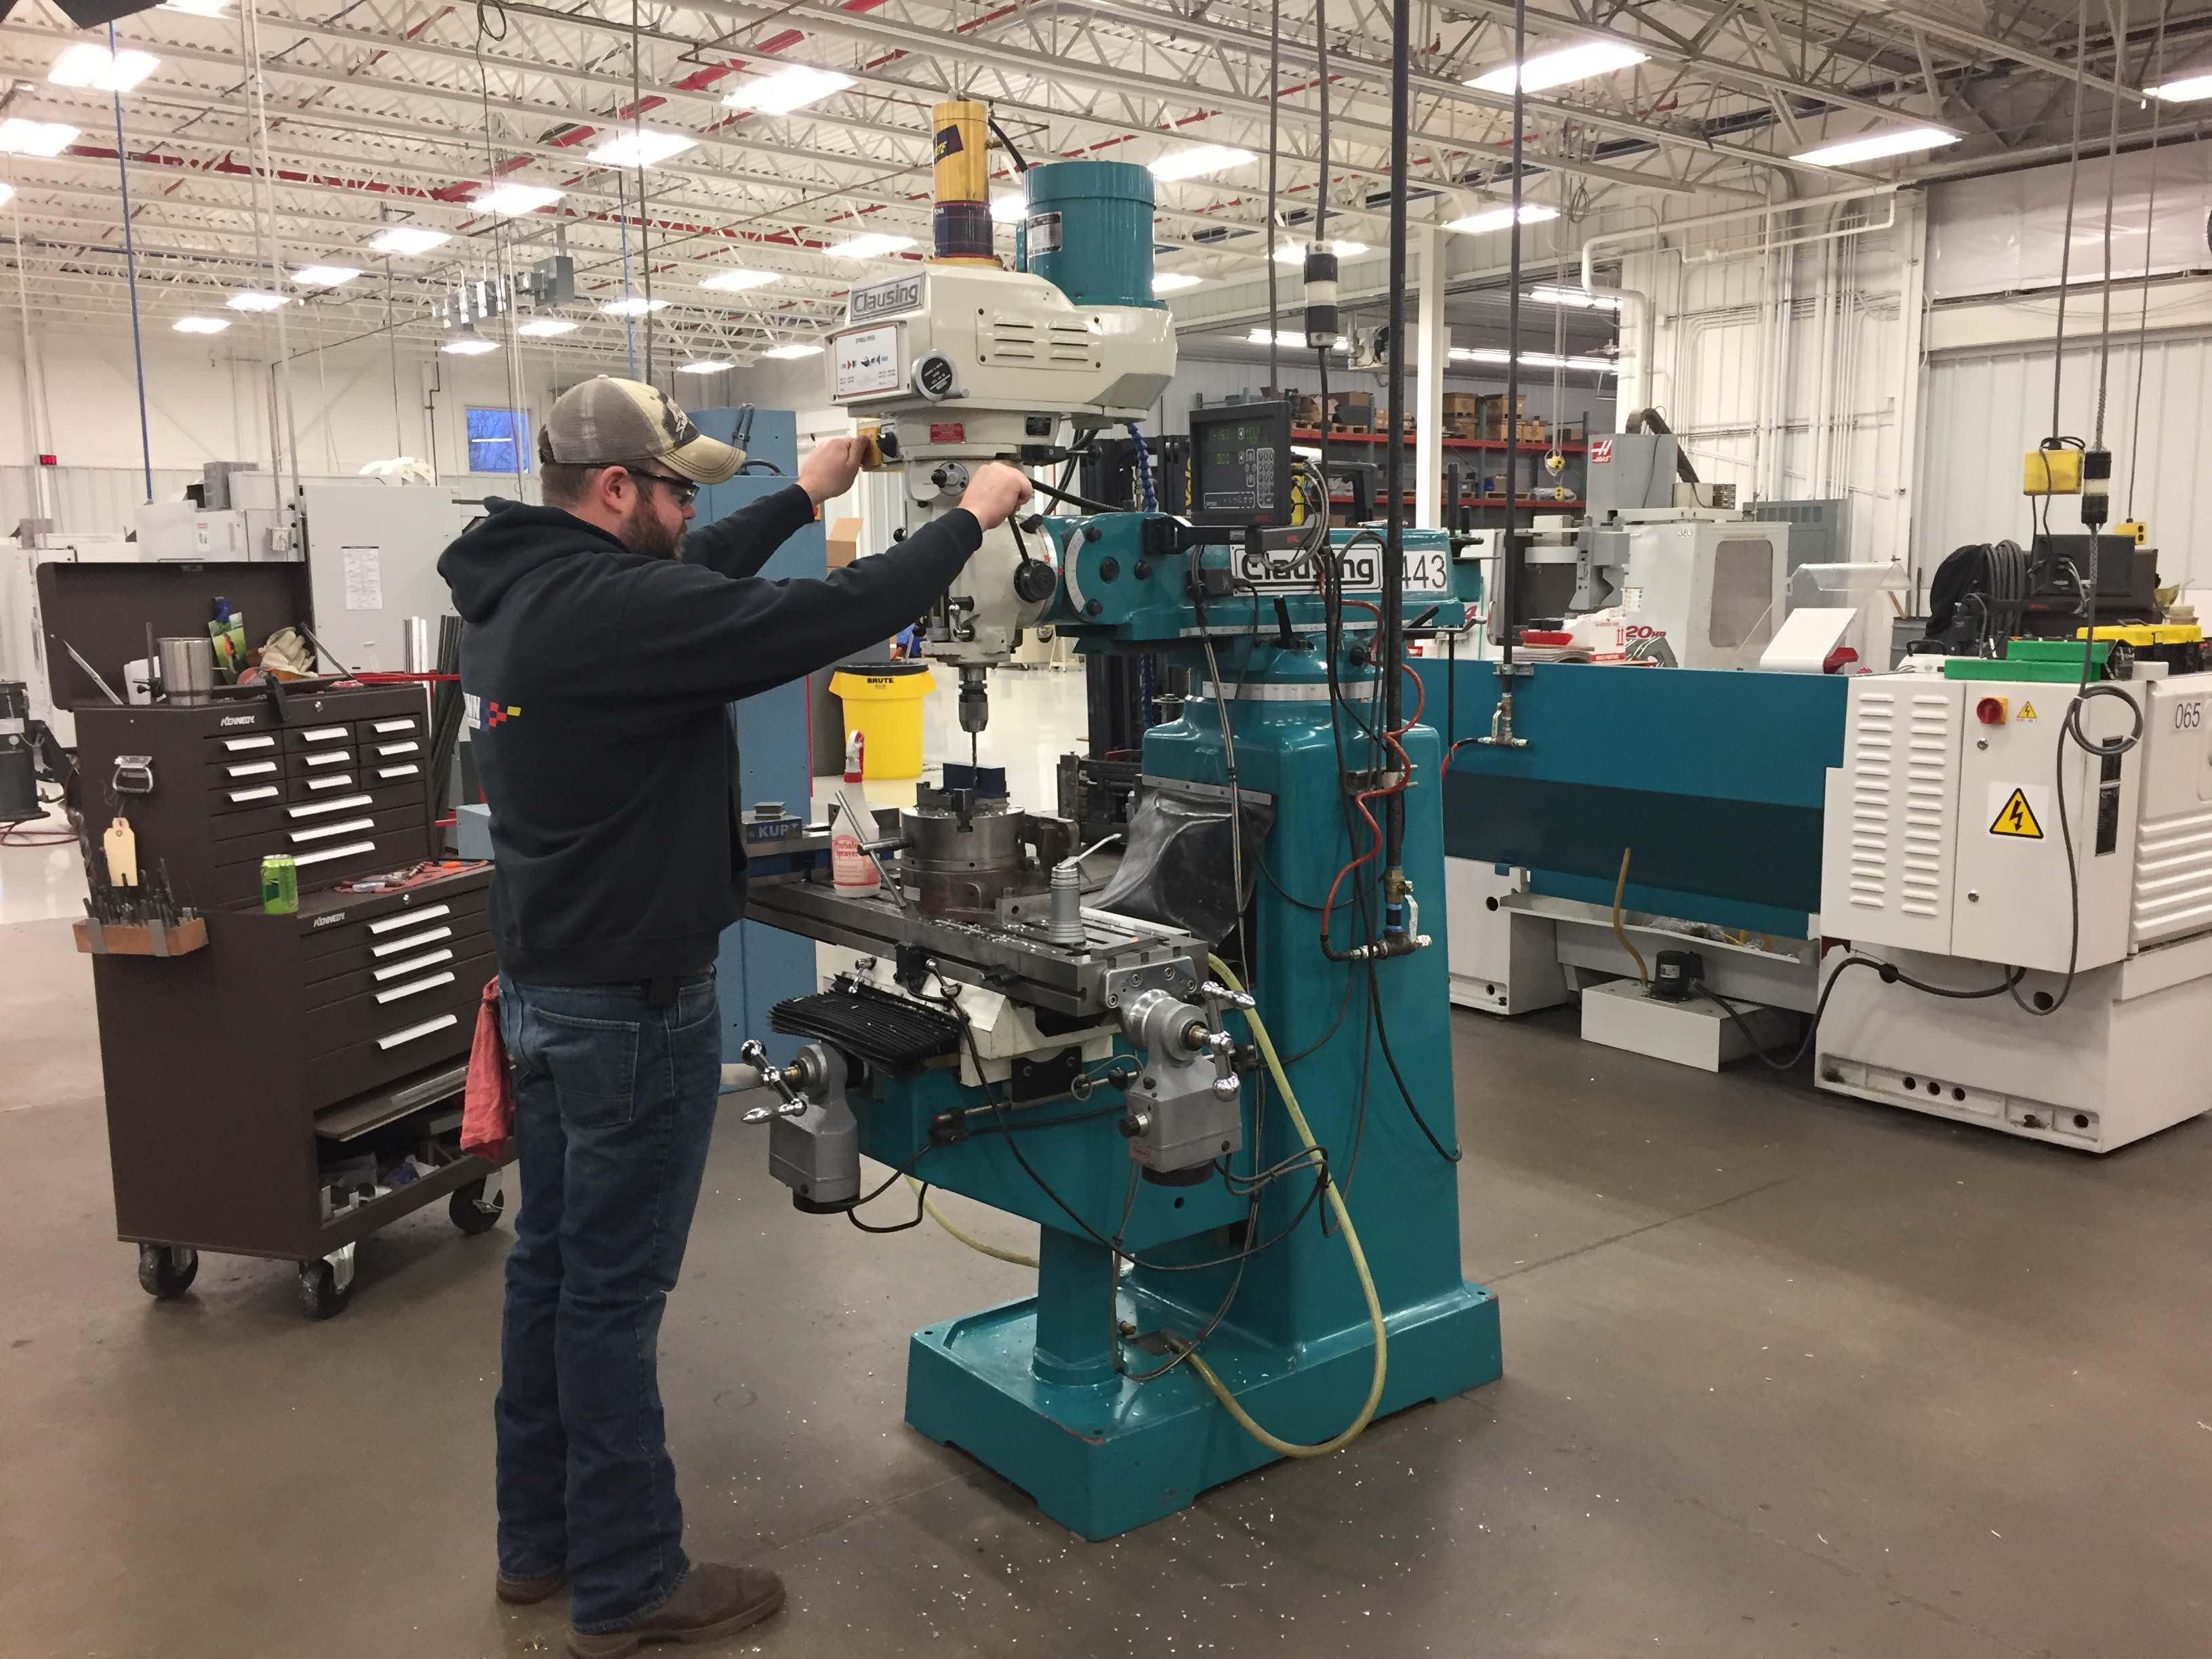 The Knee Mill: Still Standing | Cutting Tool Engineering